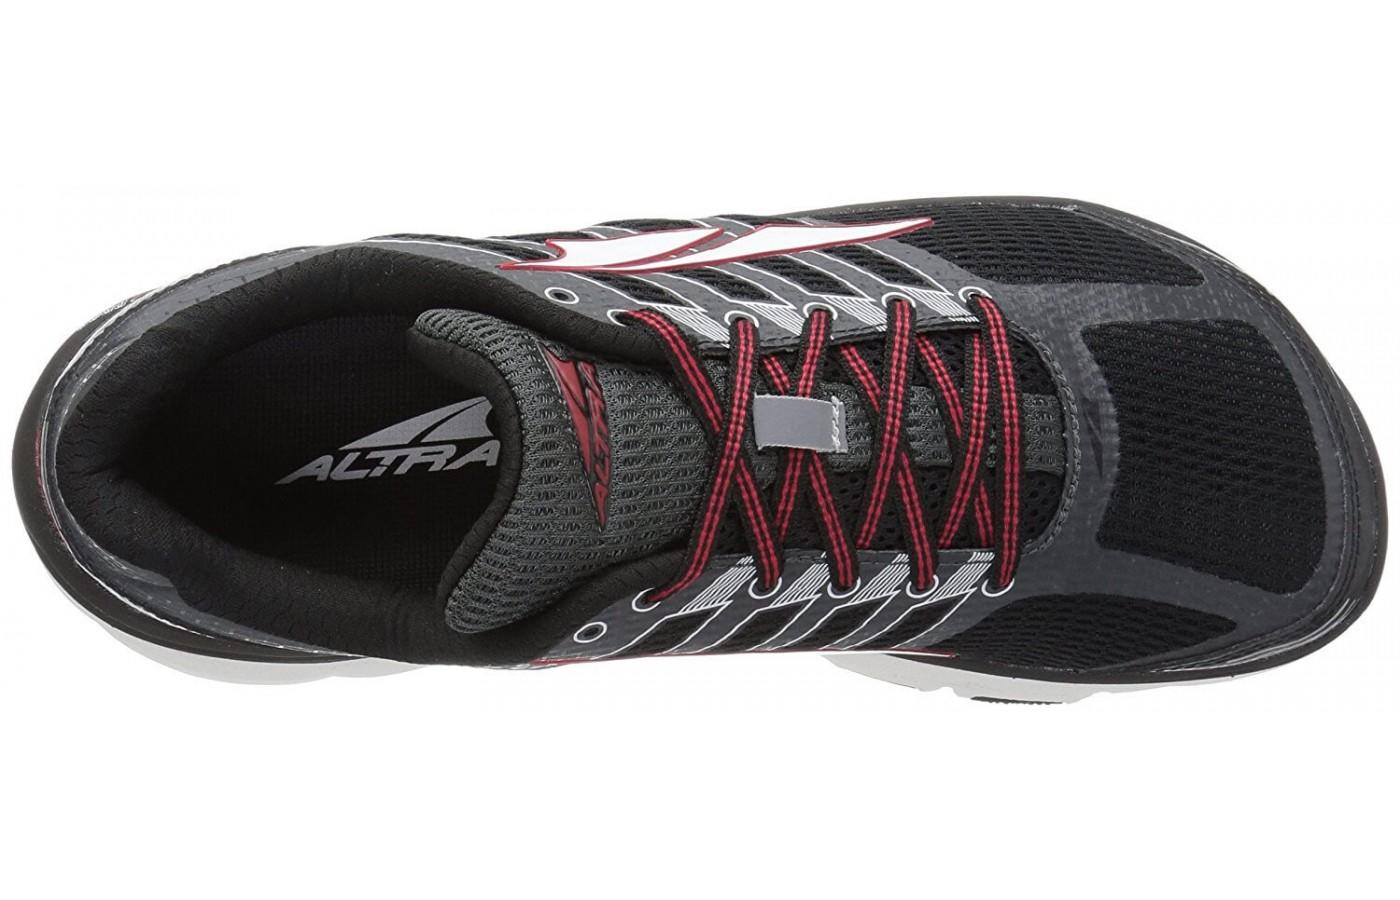 The upper of the Altra Provision 3.0 has a breathable mesh